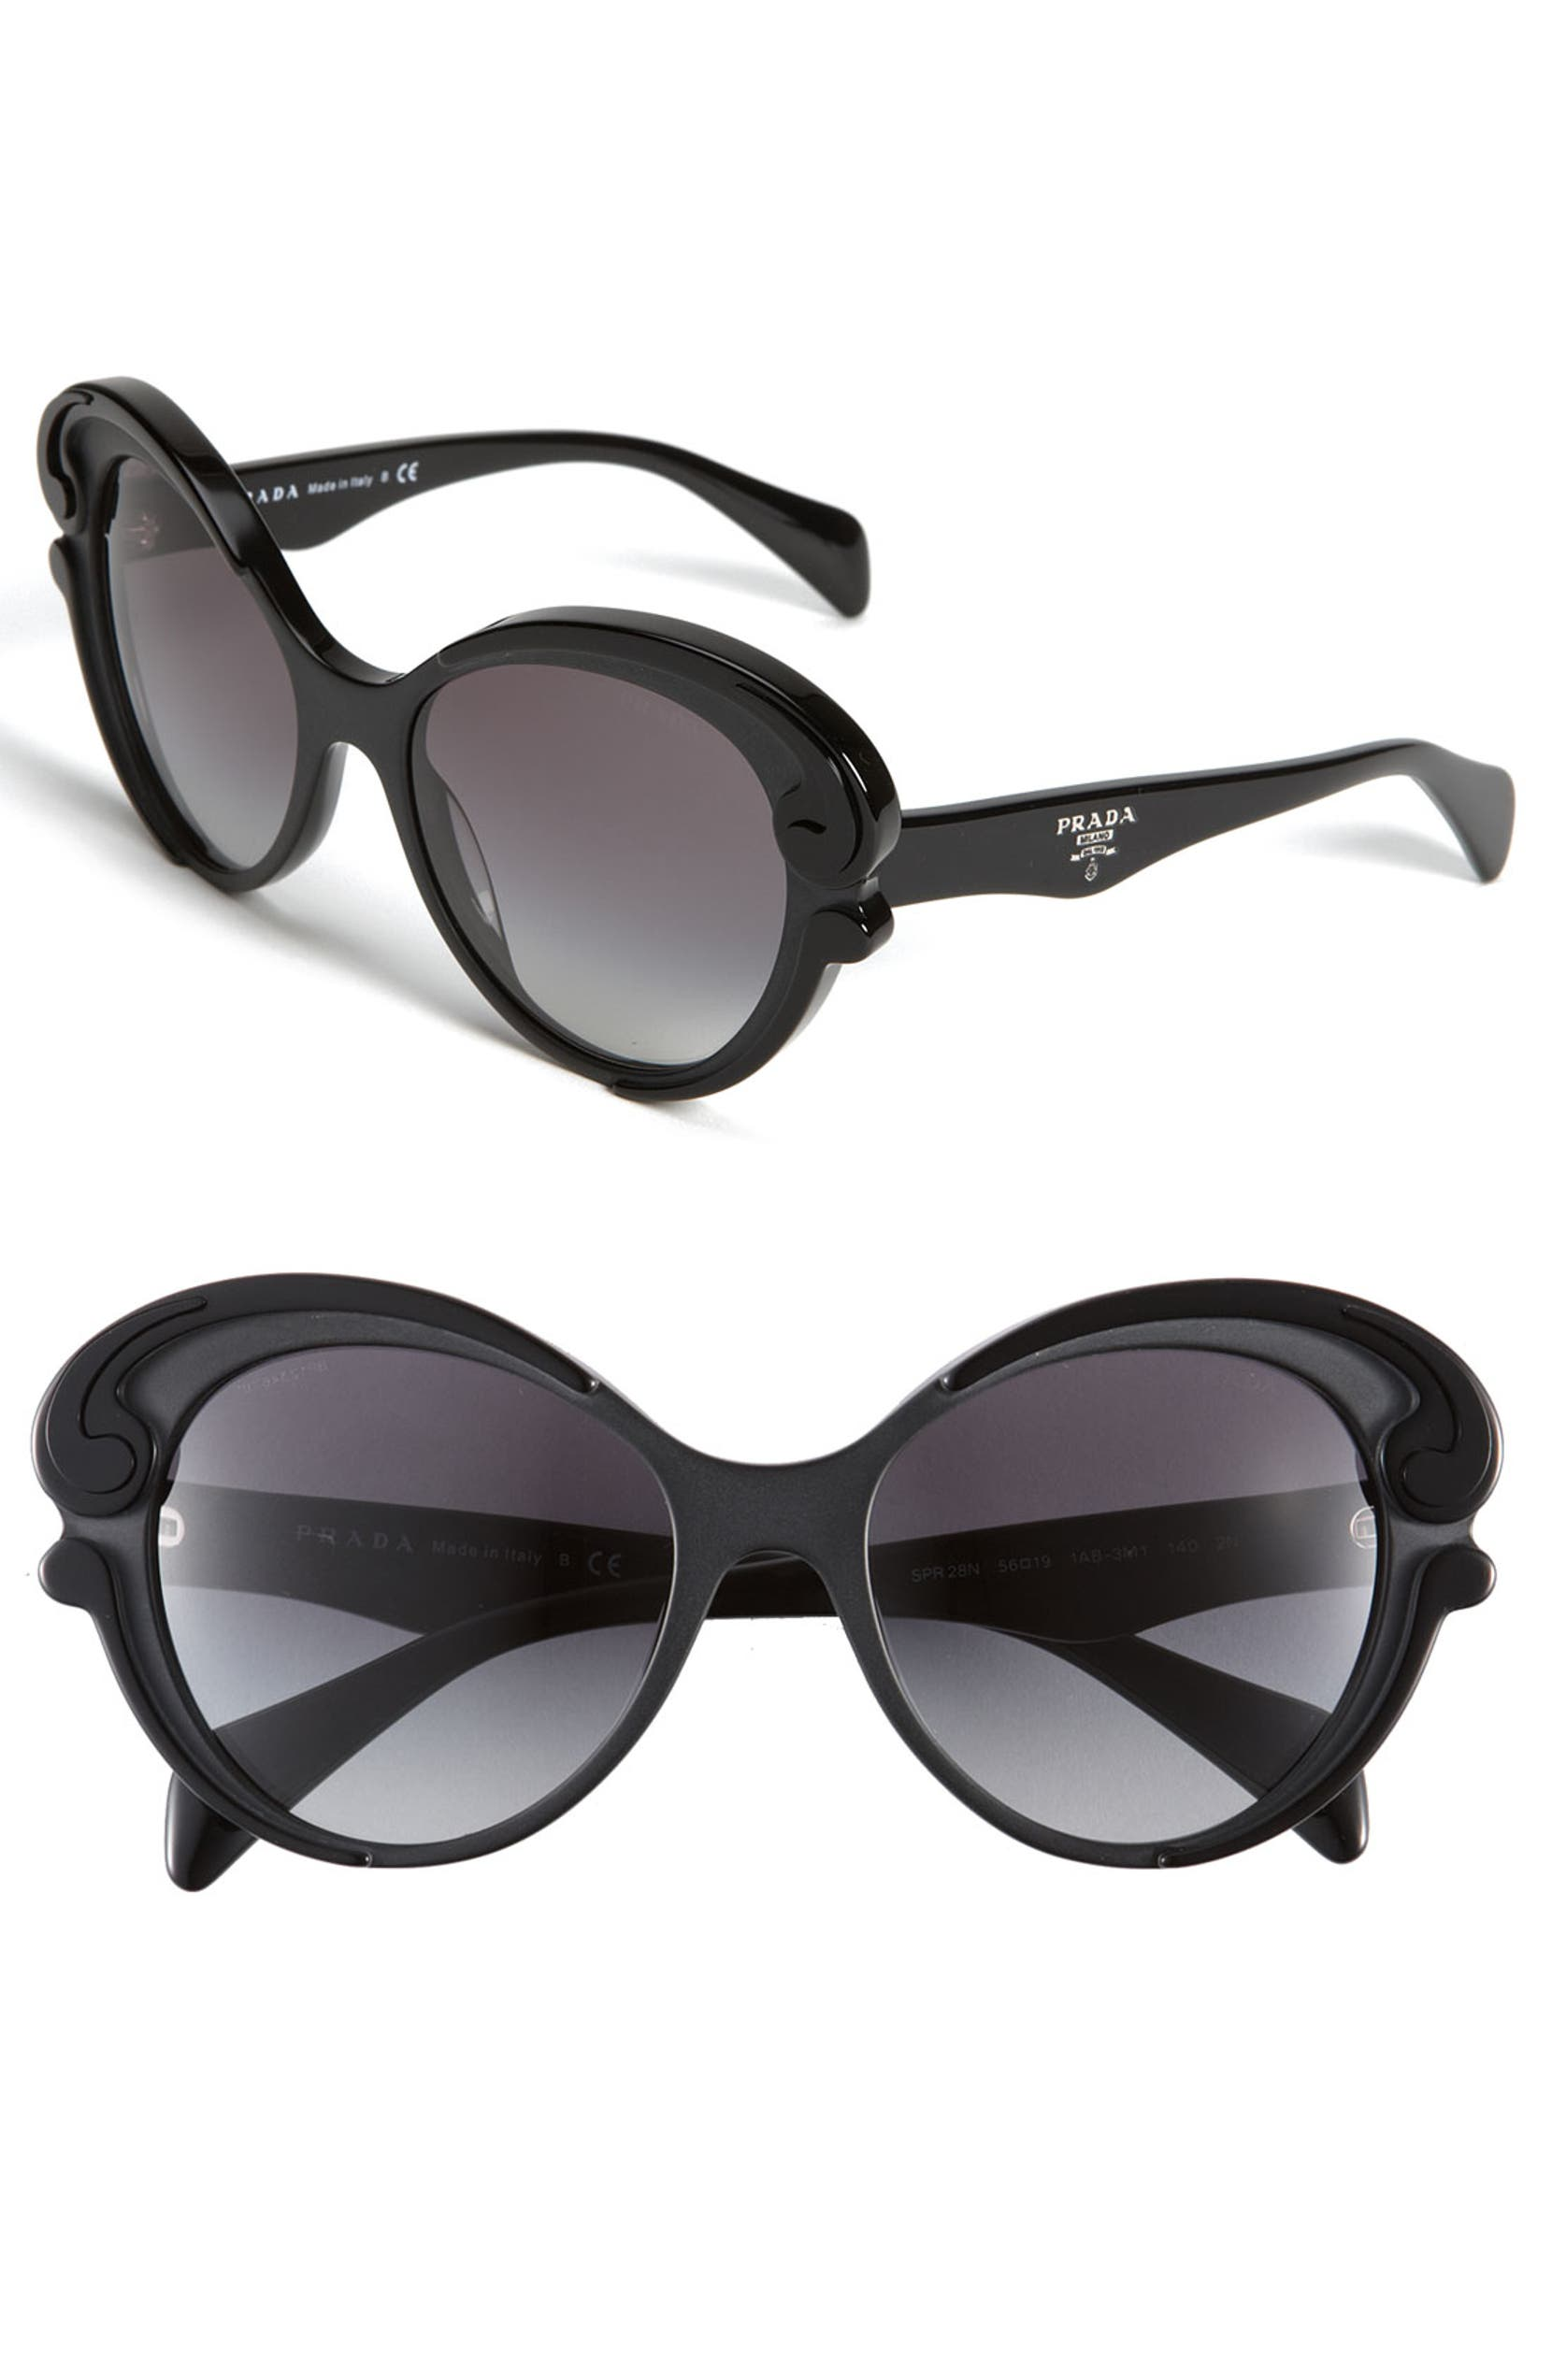 2c7f50a56ea Prada  Baroque  Cat s Eye Sunglasses